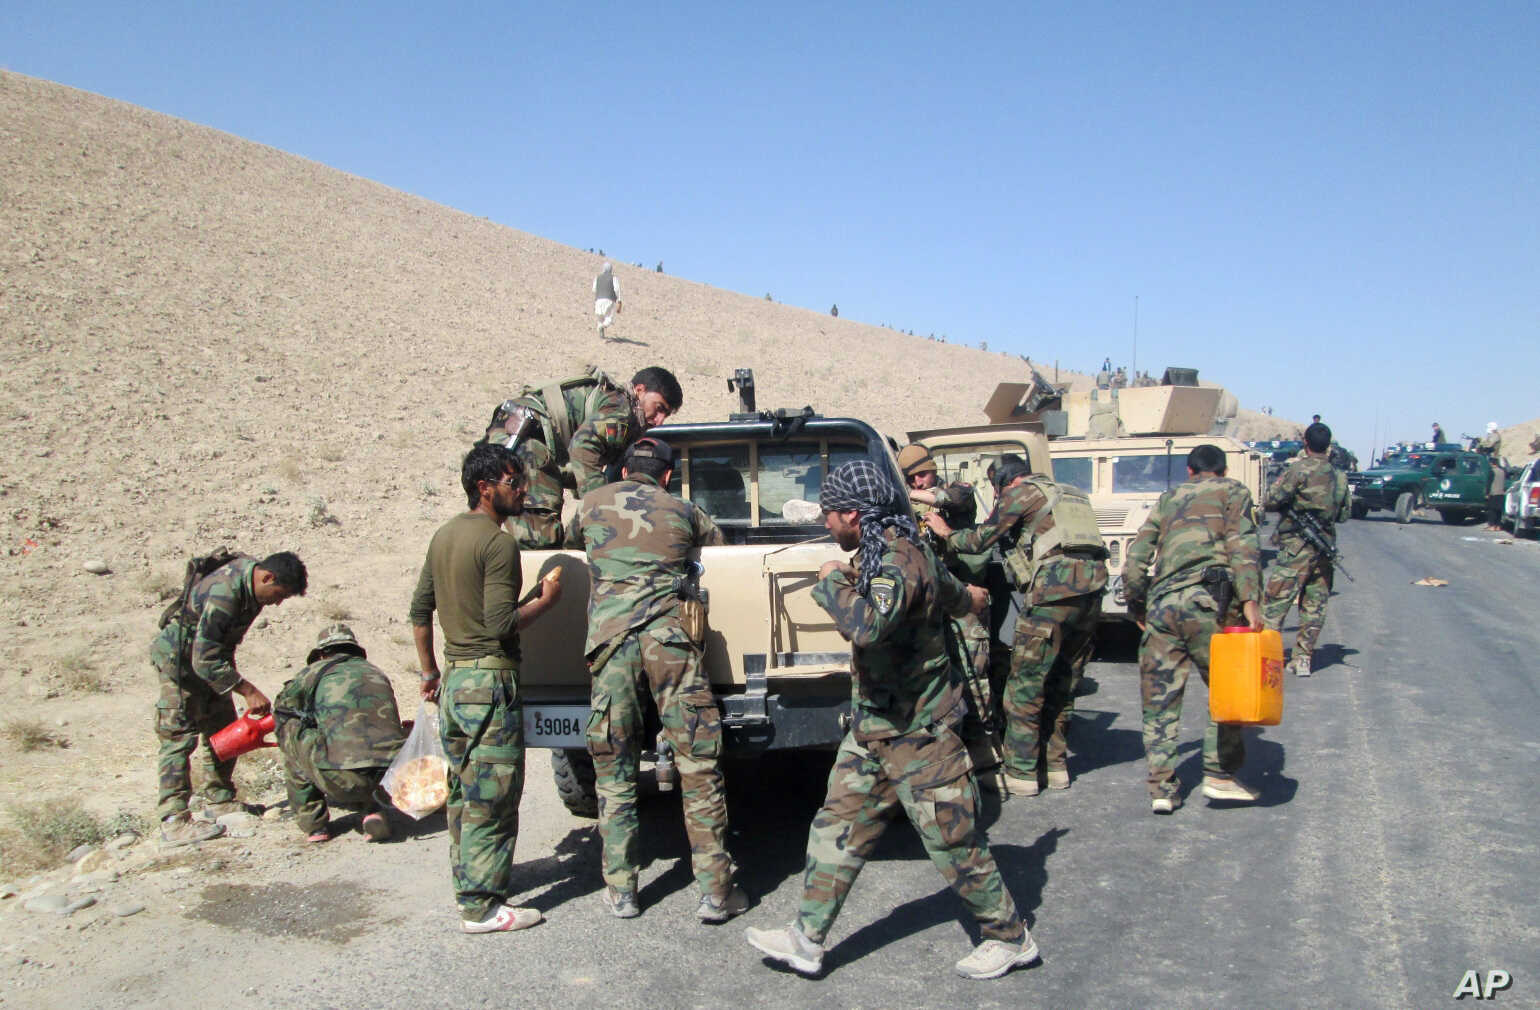 Members of Afghan security forces and volunteer militias break on their way to Kunduz, Afghanistan, to fight against Taliban militants, Oct. 1, 2015.